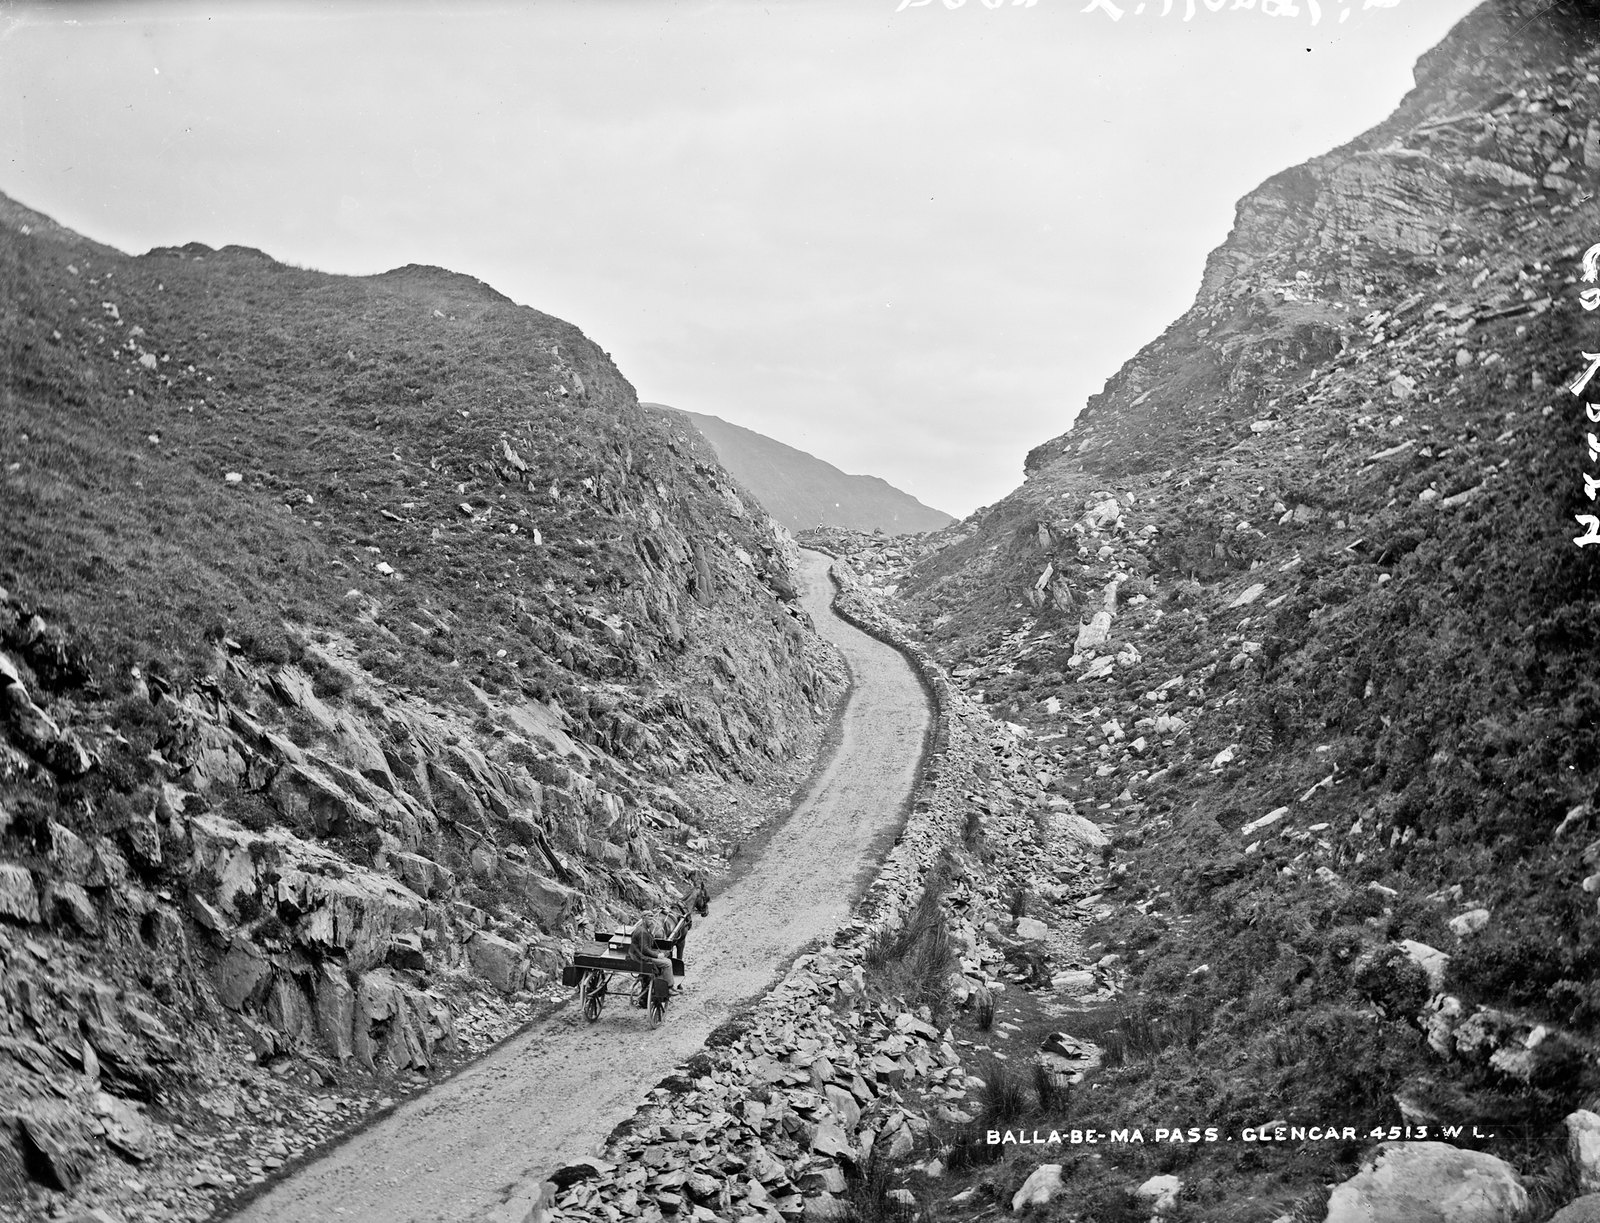 Ballaghbema Pass, Glencar, Co. Kerry | by National Library of Ireland on The Commons